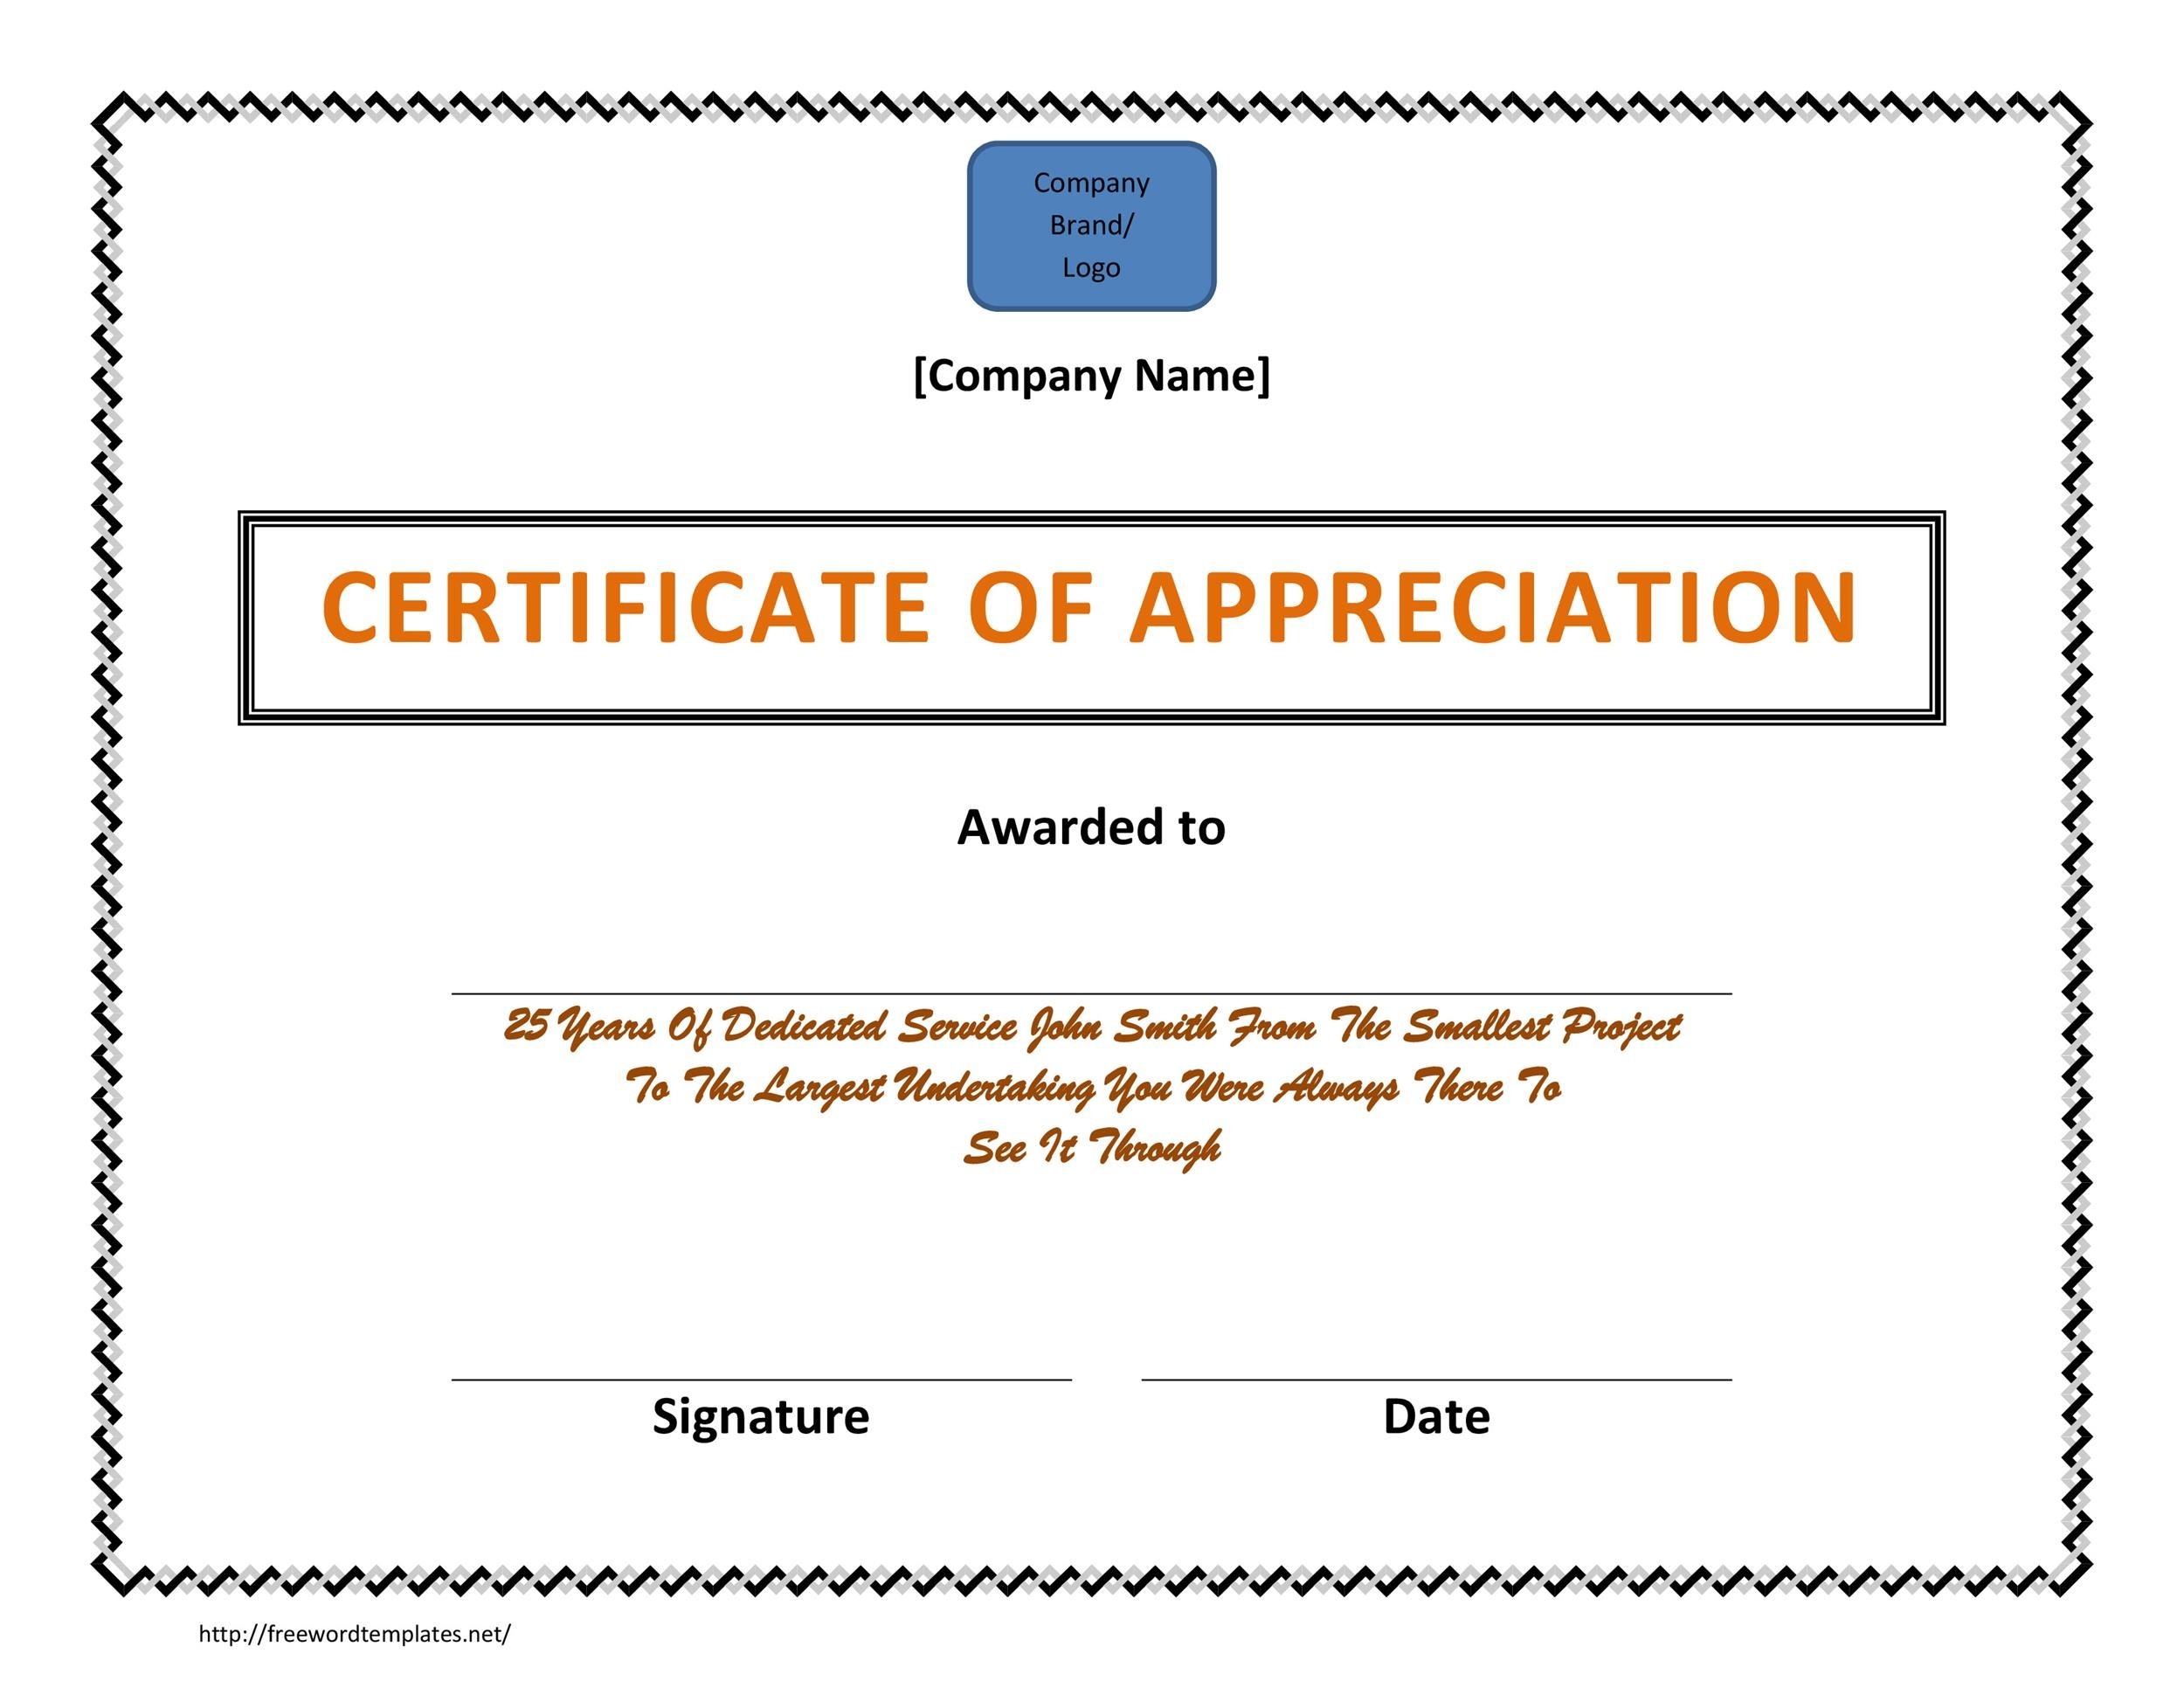 30 free certificate of appreciation templates and letters printable certificate of appreciation 05 yadclub Images